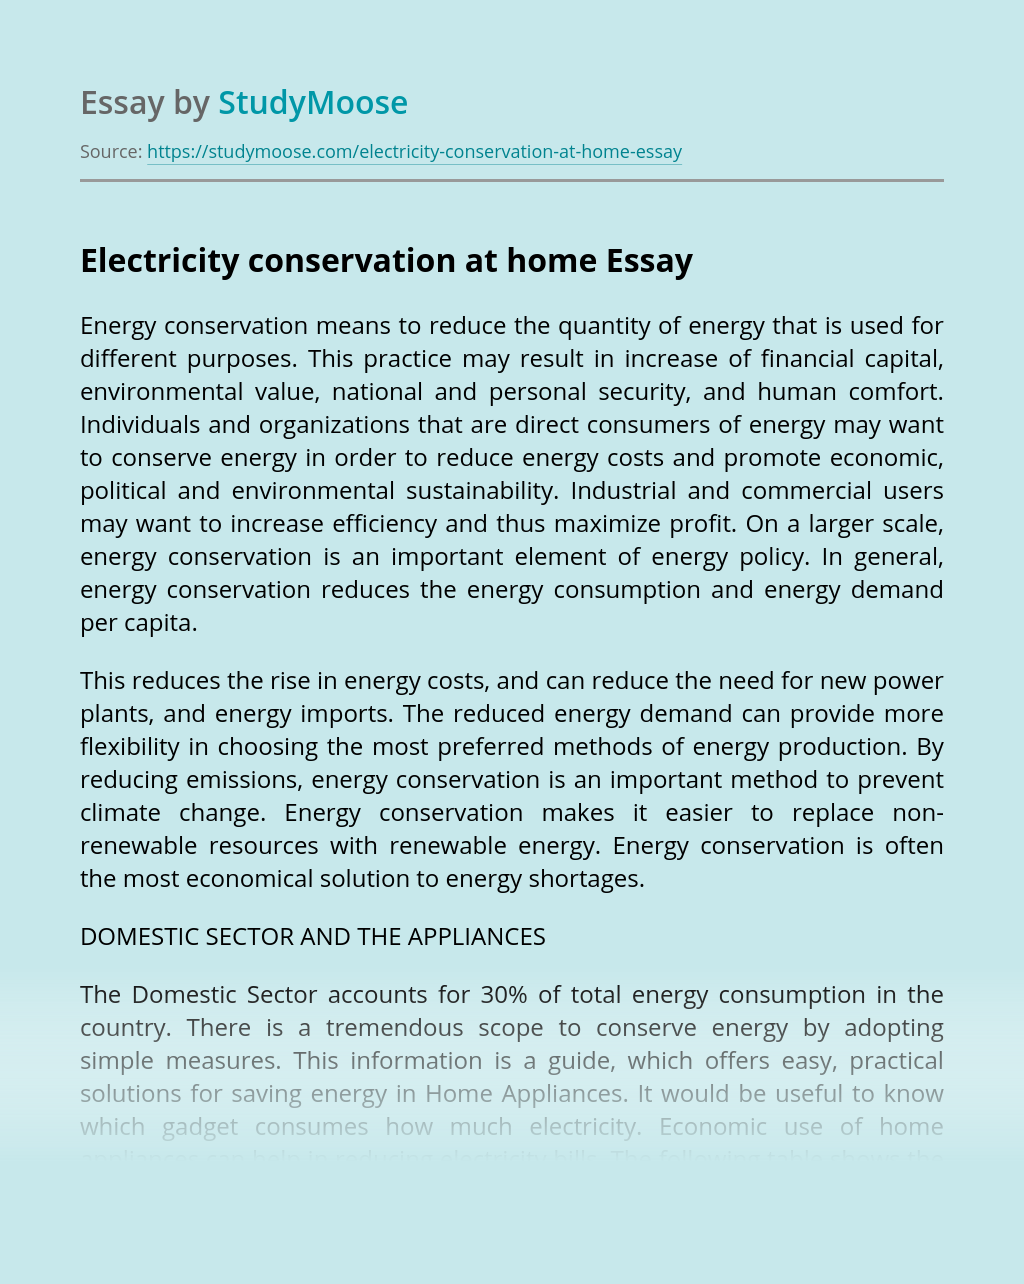 Electricity conservation at home